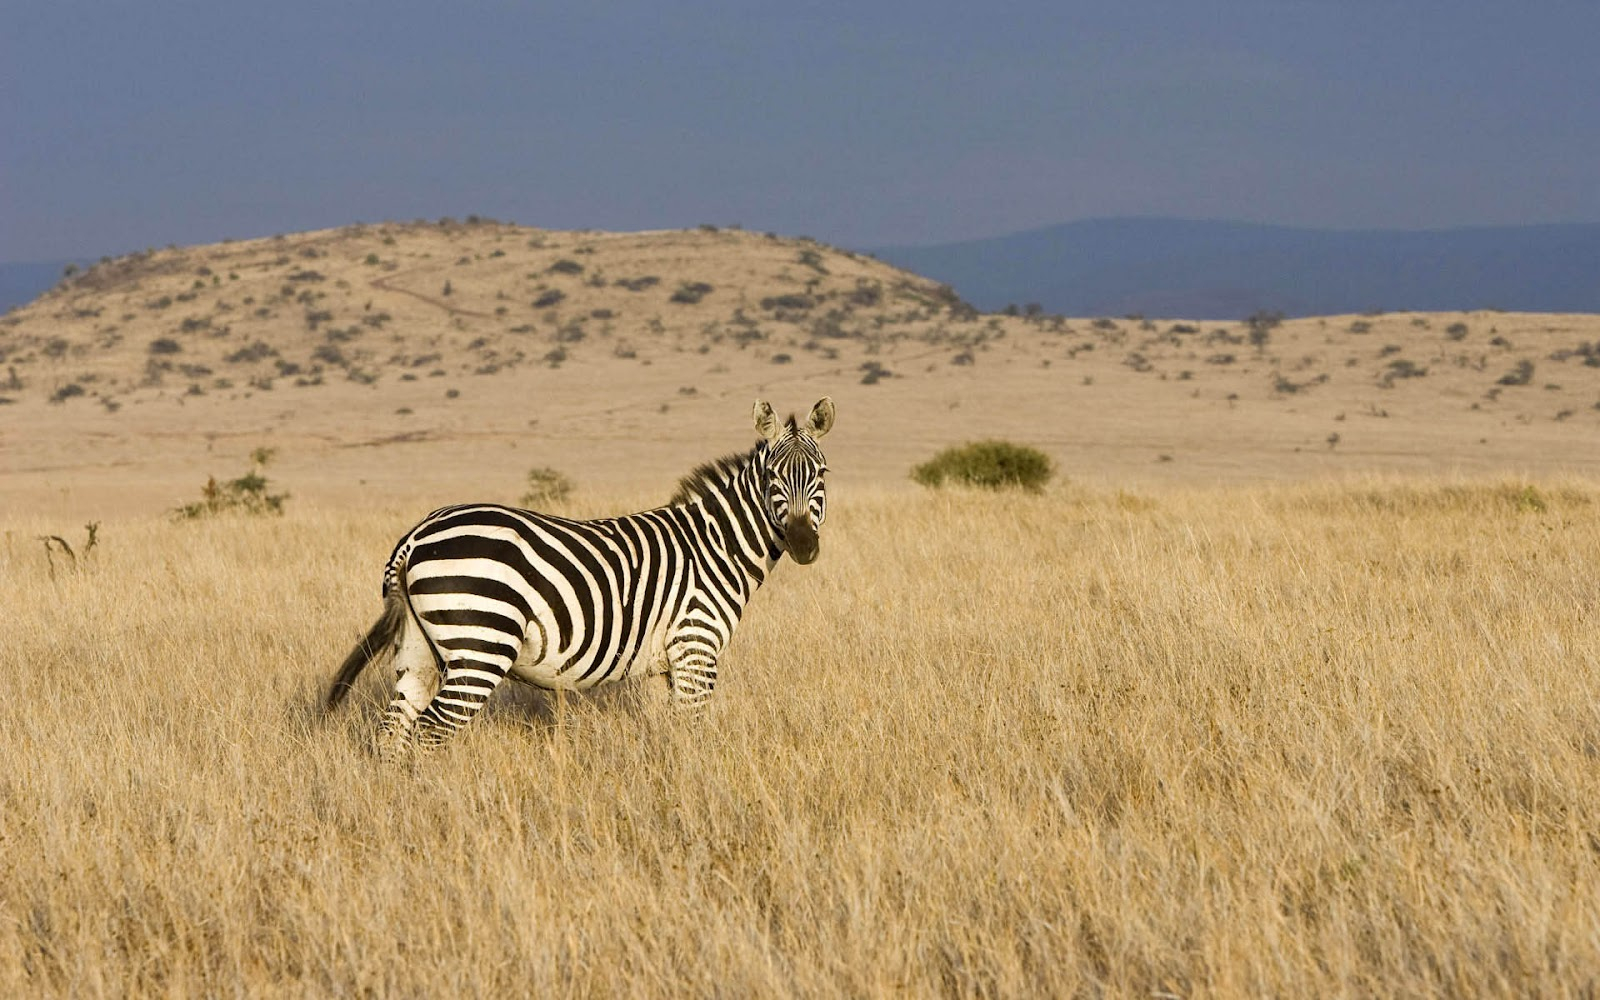 http://2.bp.blogspot.com/-8voxzz2EFw0/UCQSRJDCETI/AAAAAAAAAMY/xBmFn40dR5o/s1600/hd-zebra-wallpaper-with-a-zebra-in-dry-field-background-picture.jpg